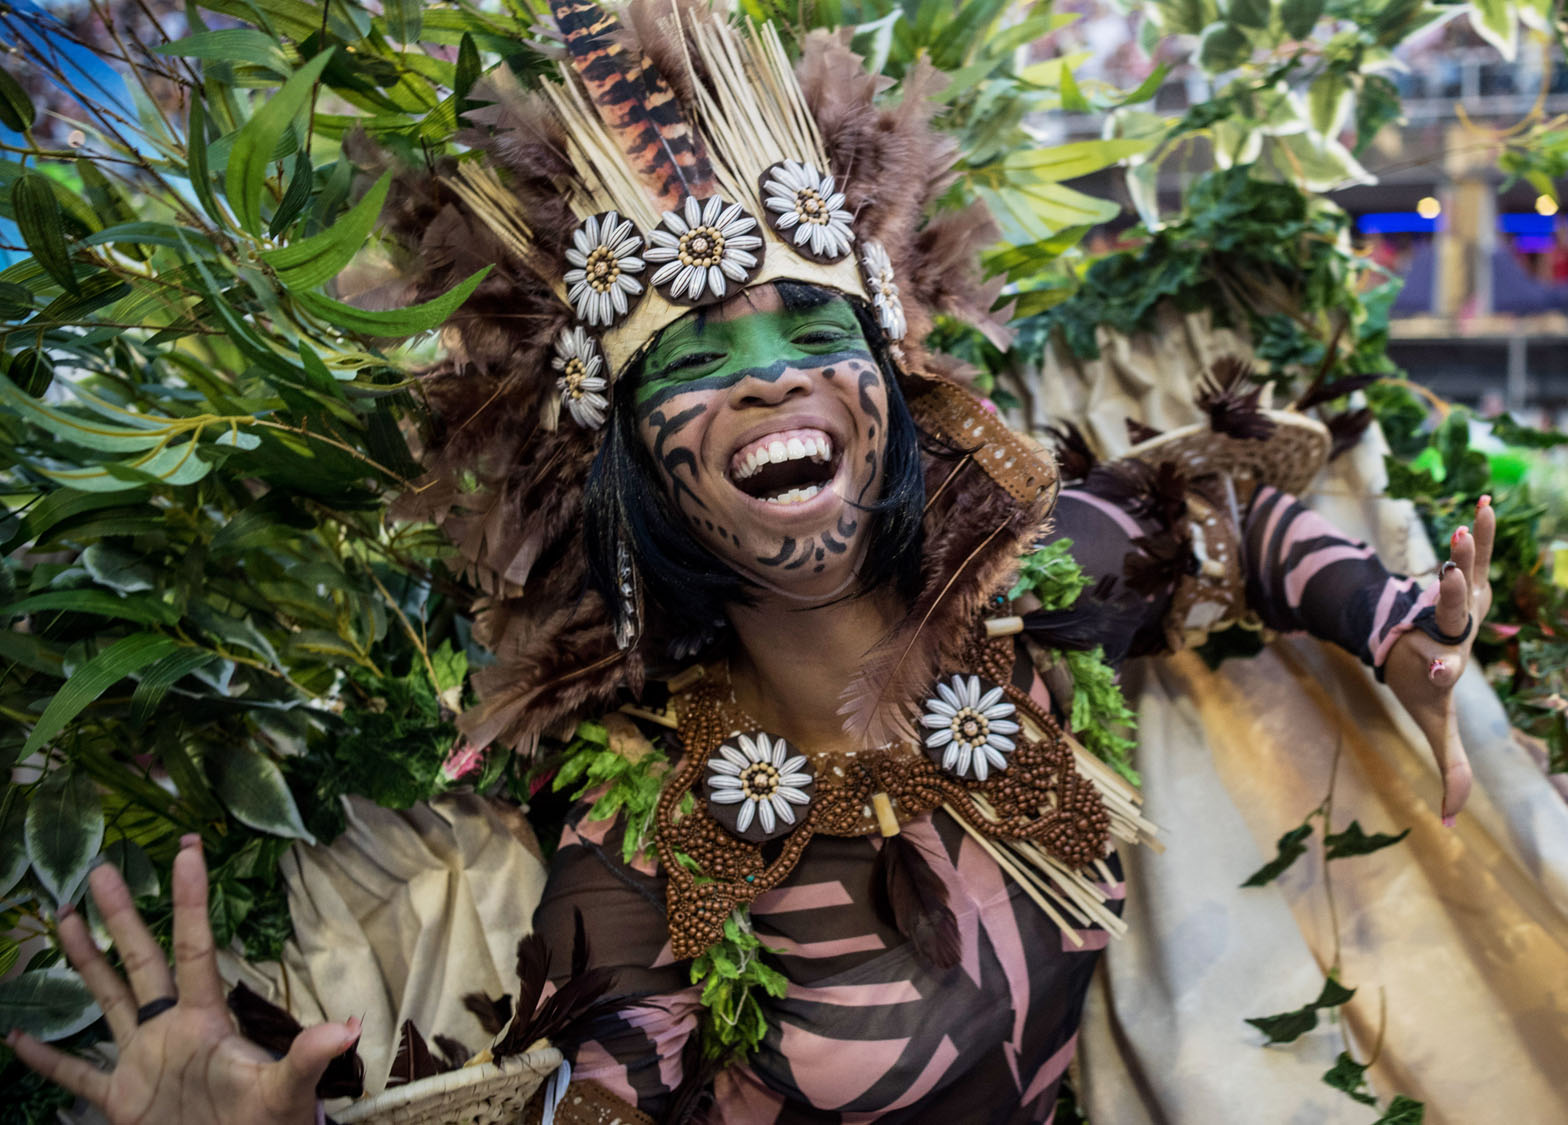 Rio Carnival Images - Reverse Search